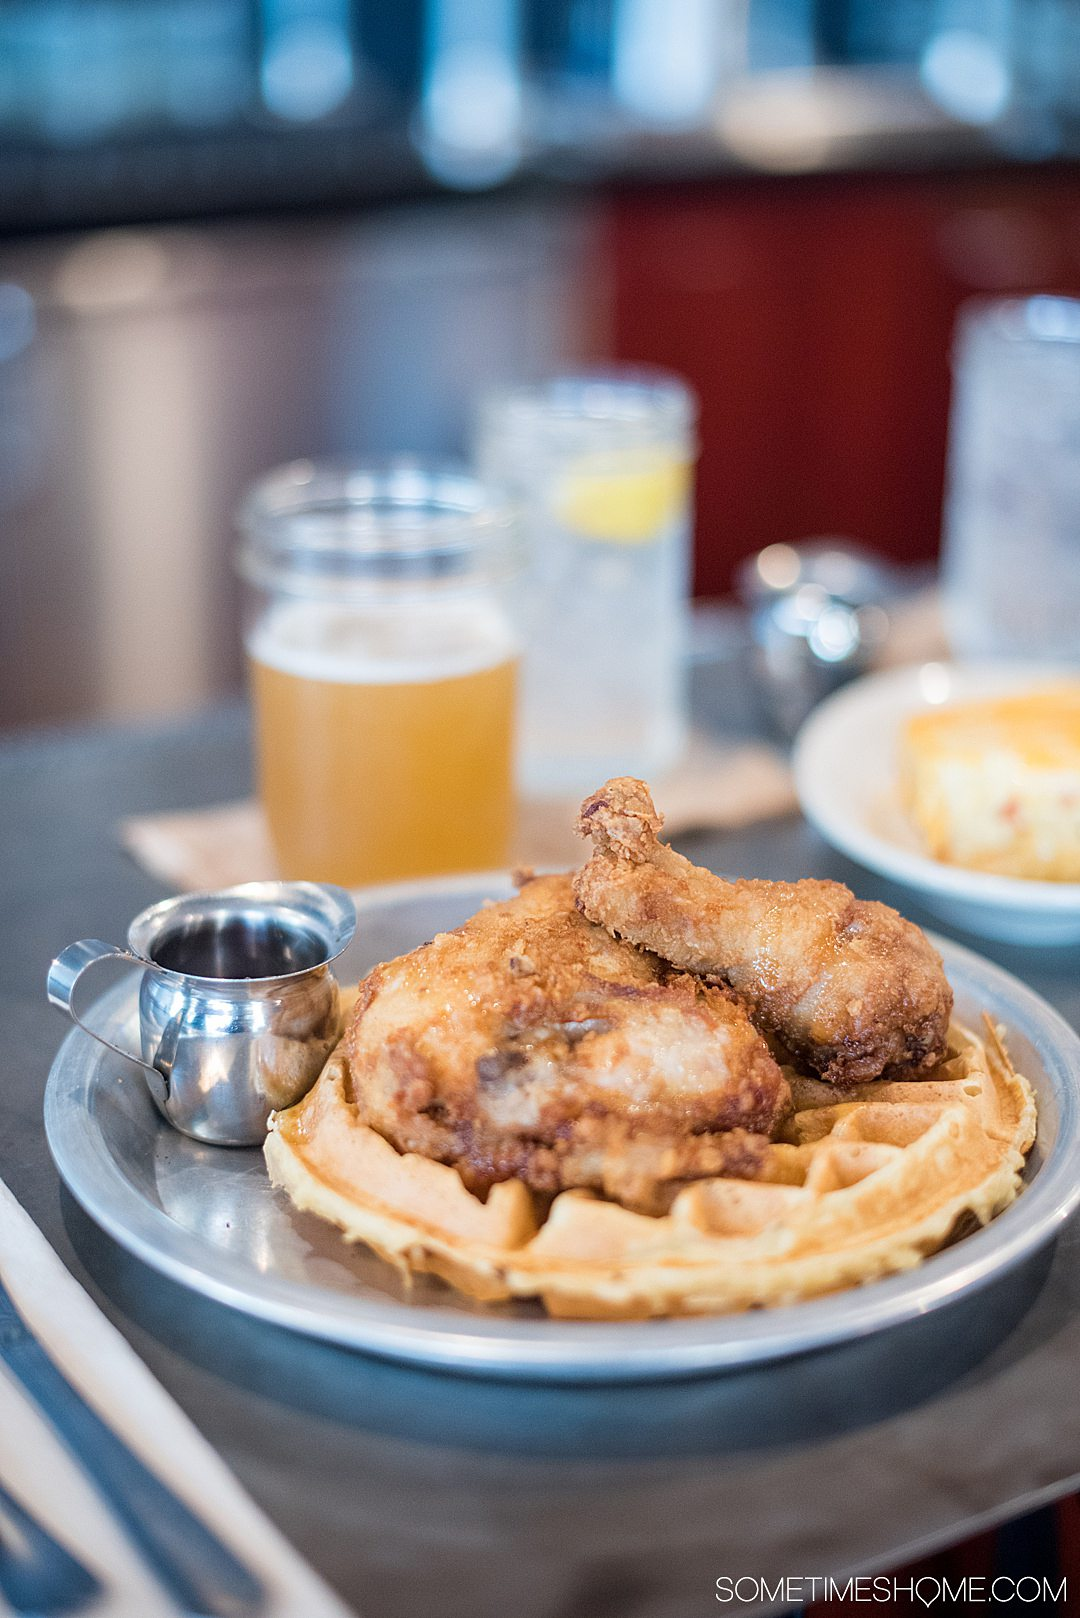 Traditional southern food to try in North Carolina or South Carolina, including soulful options like chicken and waffles, vinegar based BBQ, or appetizers like pimento cheese, drinks including Moscow Mules, and classic fried green tomatoes or shrimp n grits. We recommend restaurants in Raleigh to Asheville and beyond to try these southern style dishes. #northcarolina #southcarolina #southerndishes #southernfood #shrimpngrits #friedgreentomatoes #sometimeshome